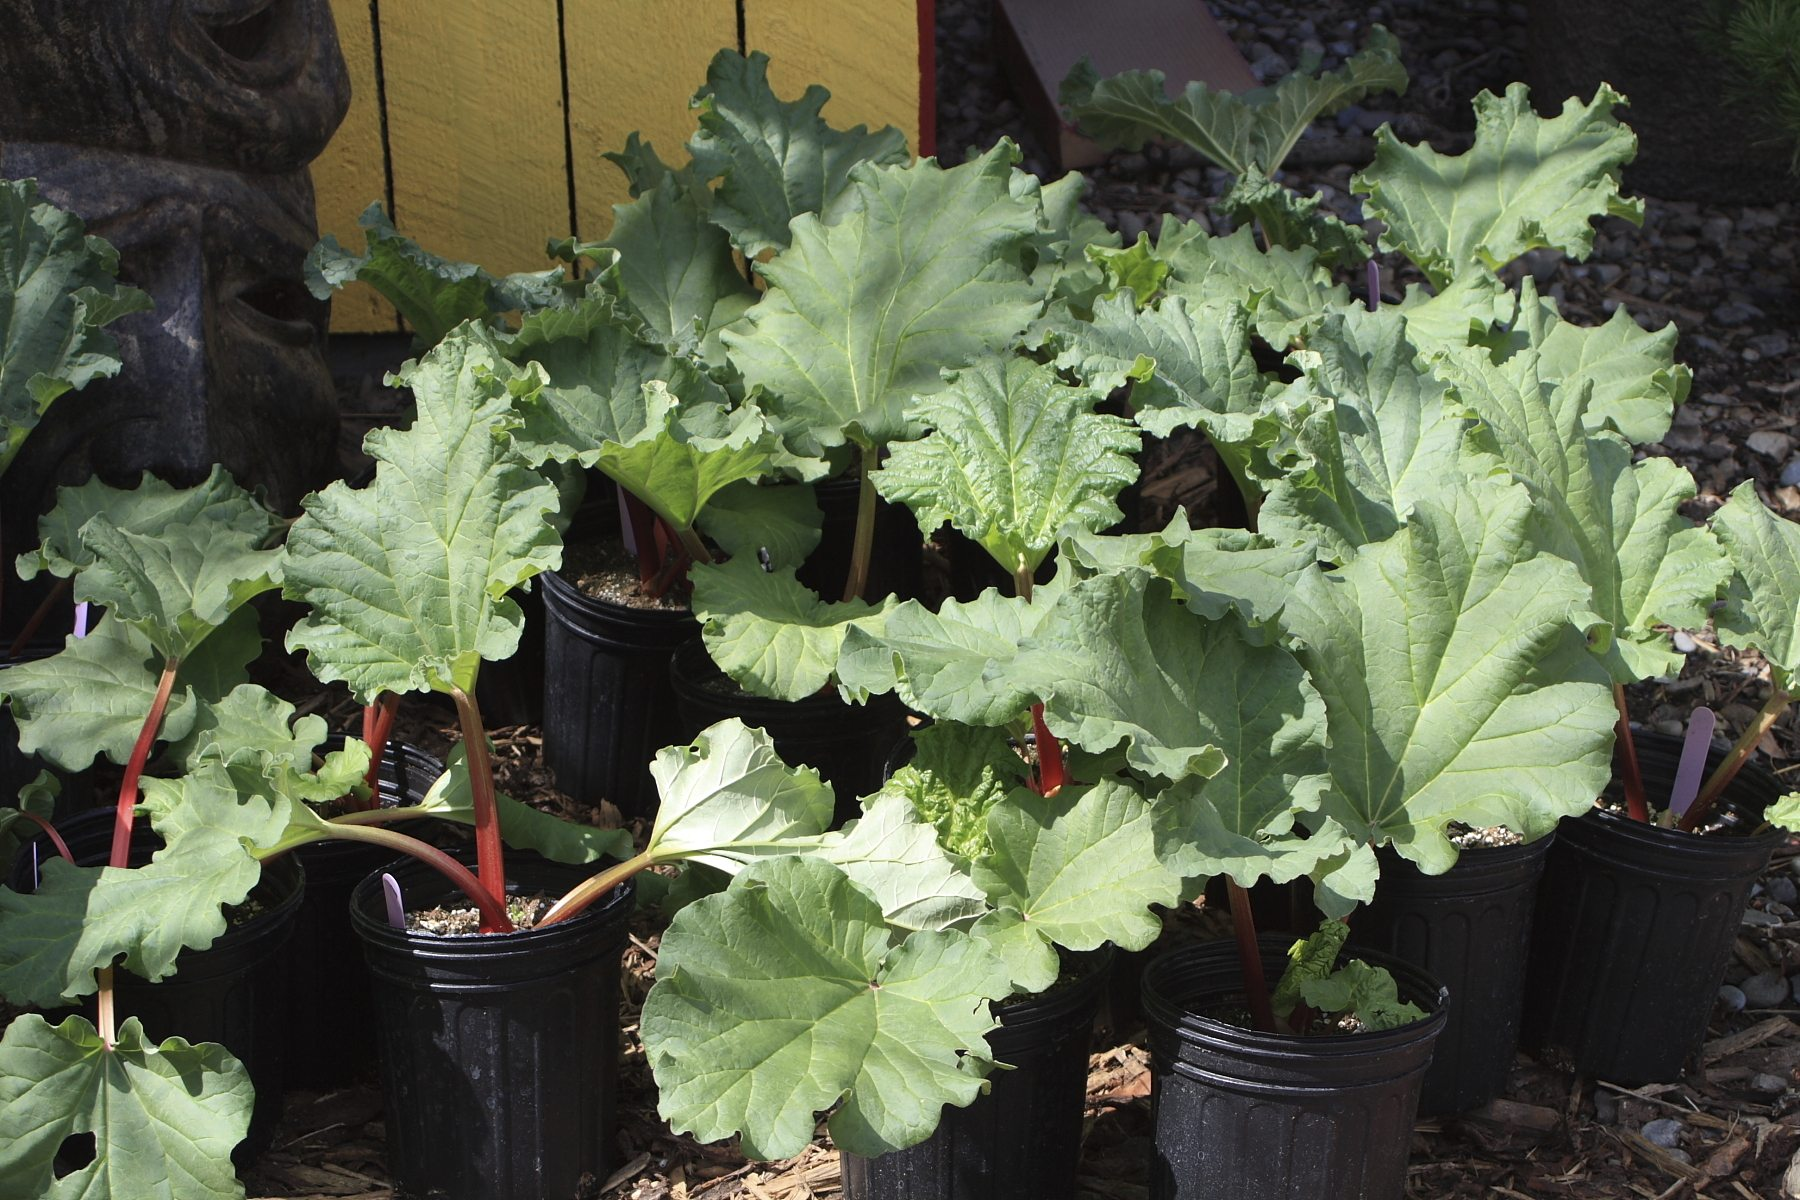 Garden Bush: Container Grown Rhubarb: Caring For Rhubarb Plants In